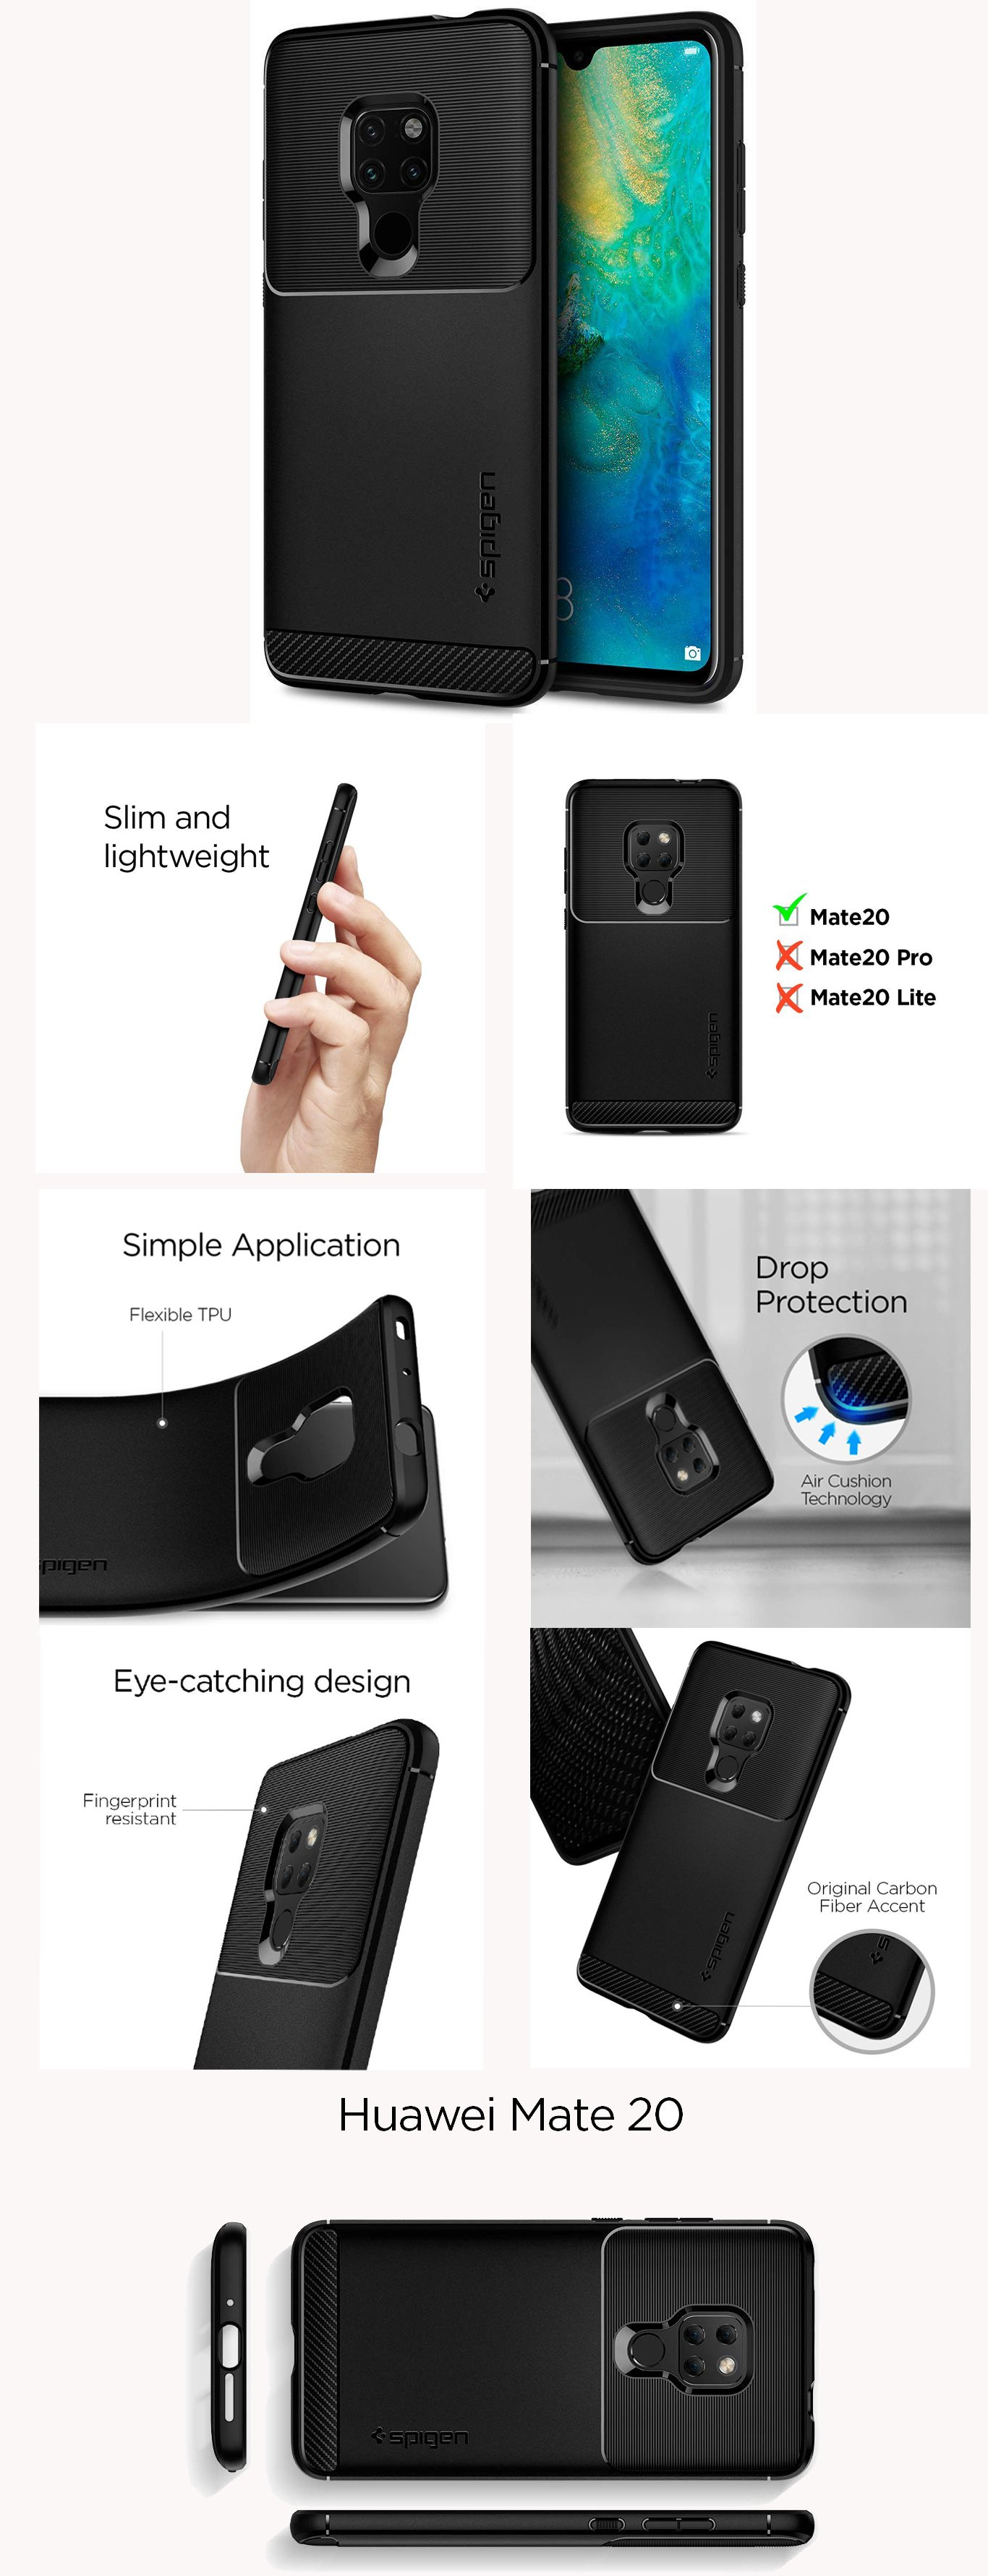 055-Description-spigen-rugged-armor-huawei-mate-20-black-color-malaysia-authorized-parner.jpg